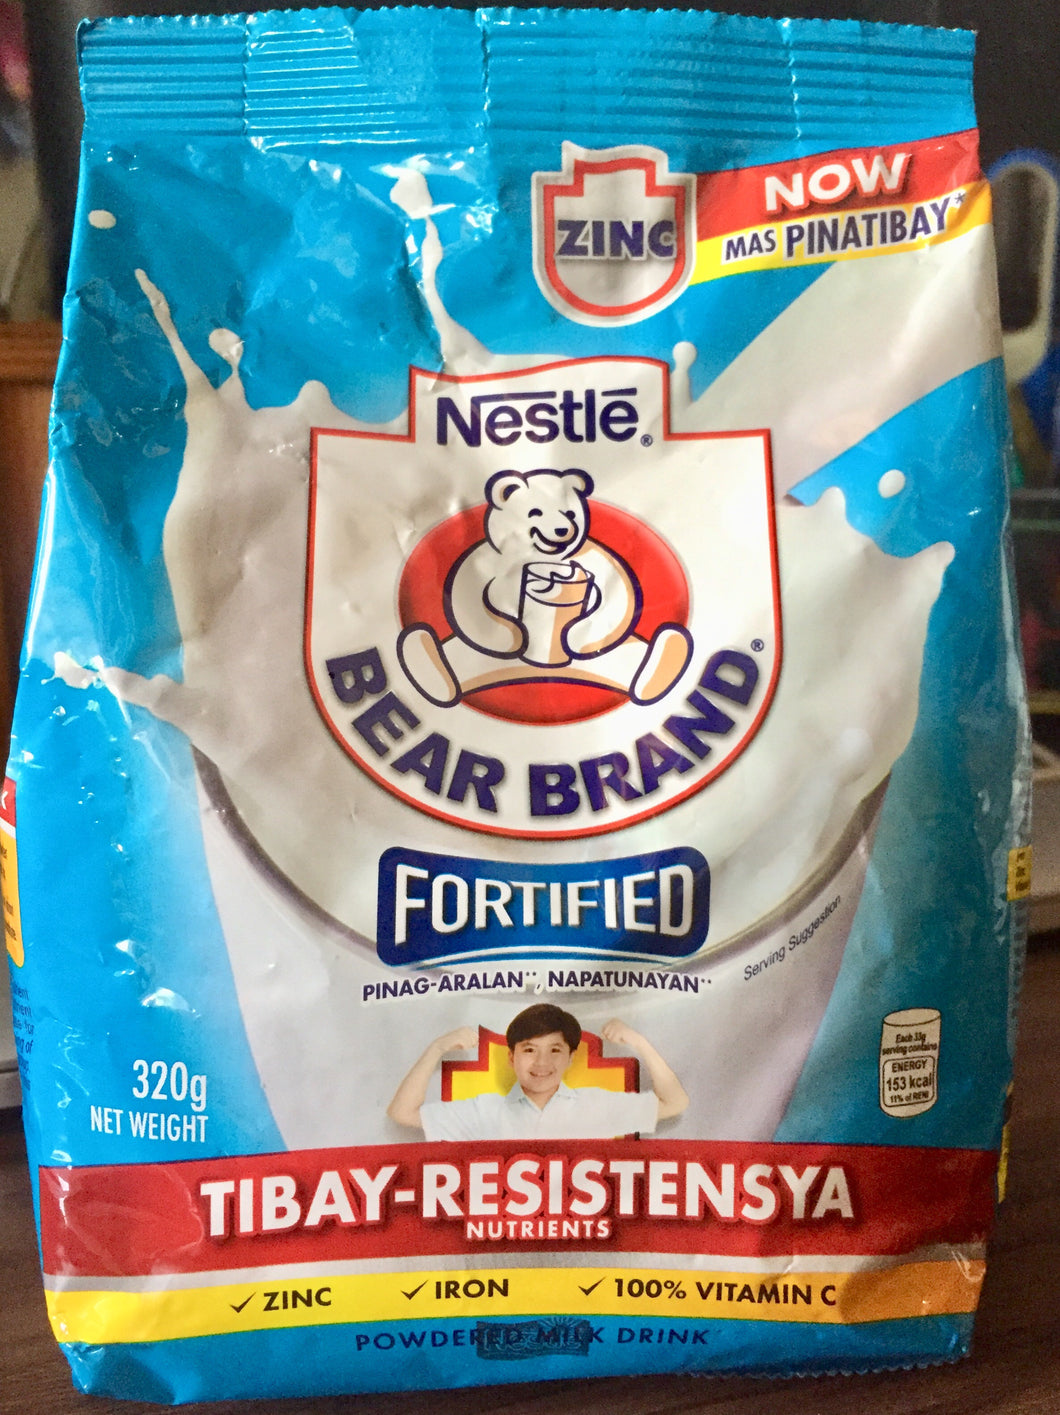 Bear Brand Fortified 320g